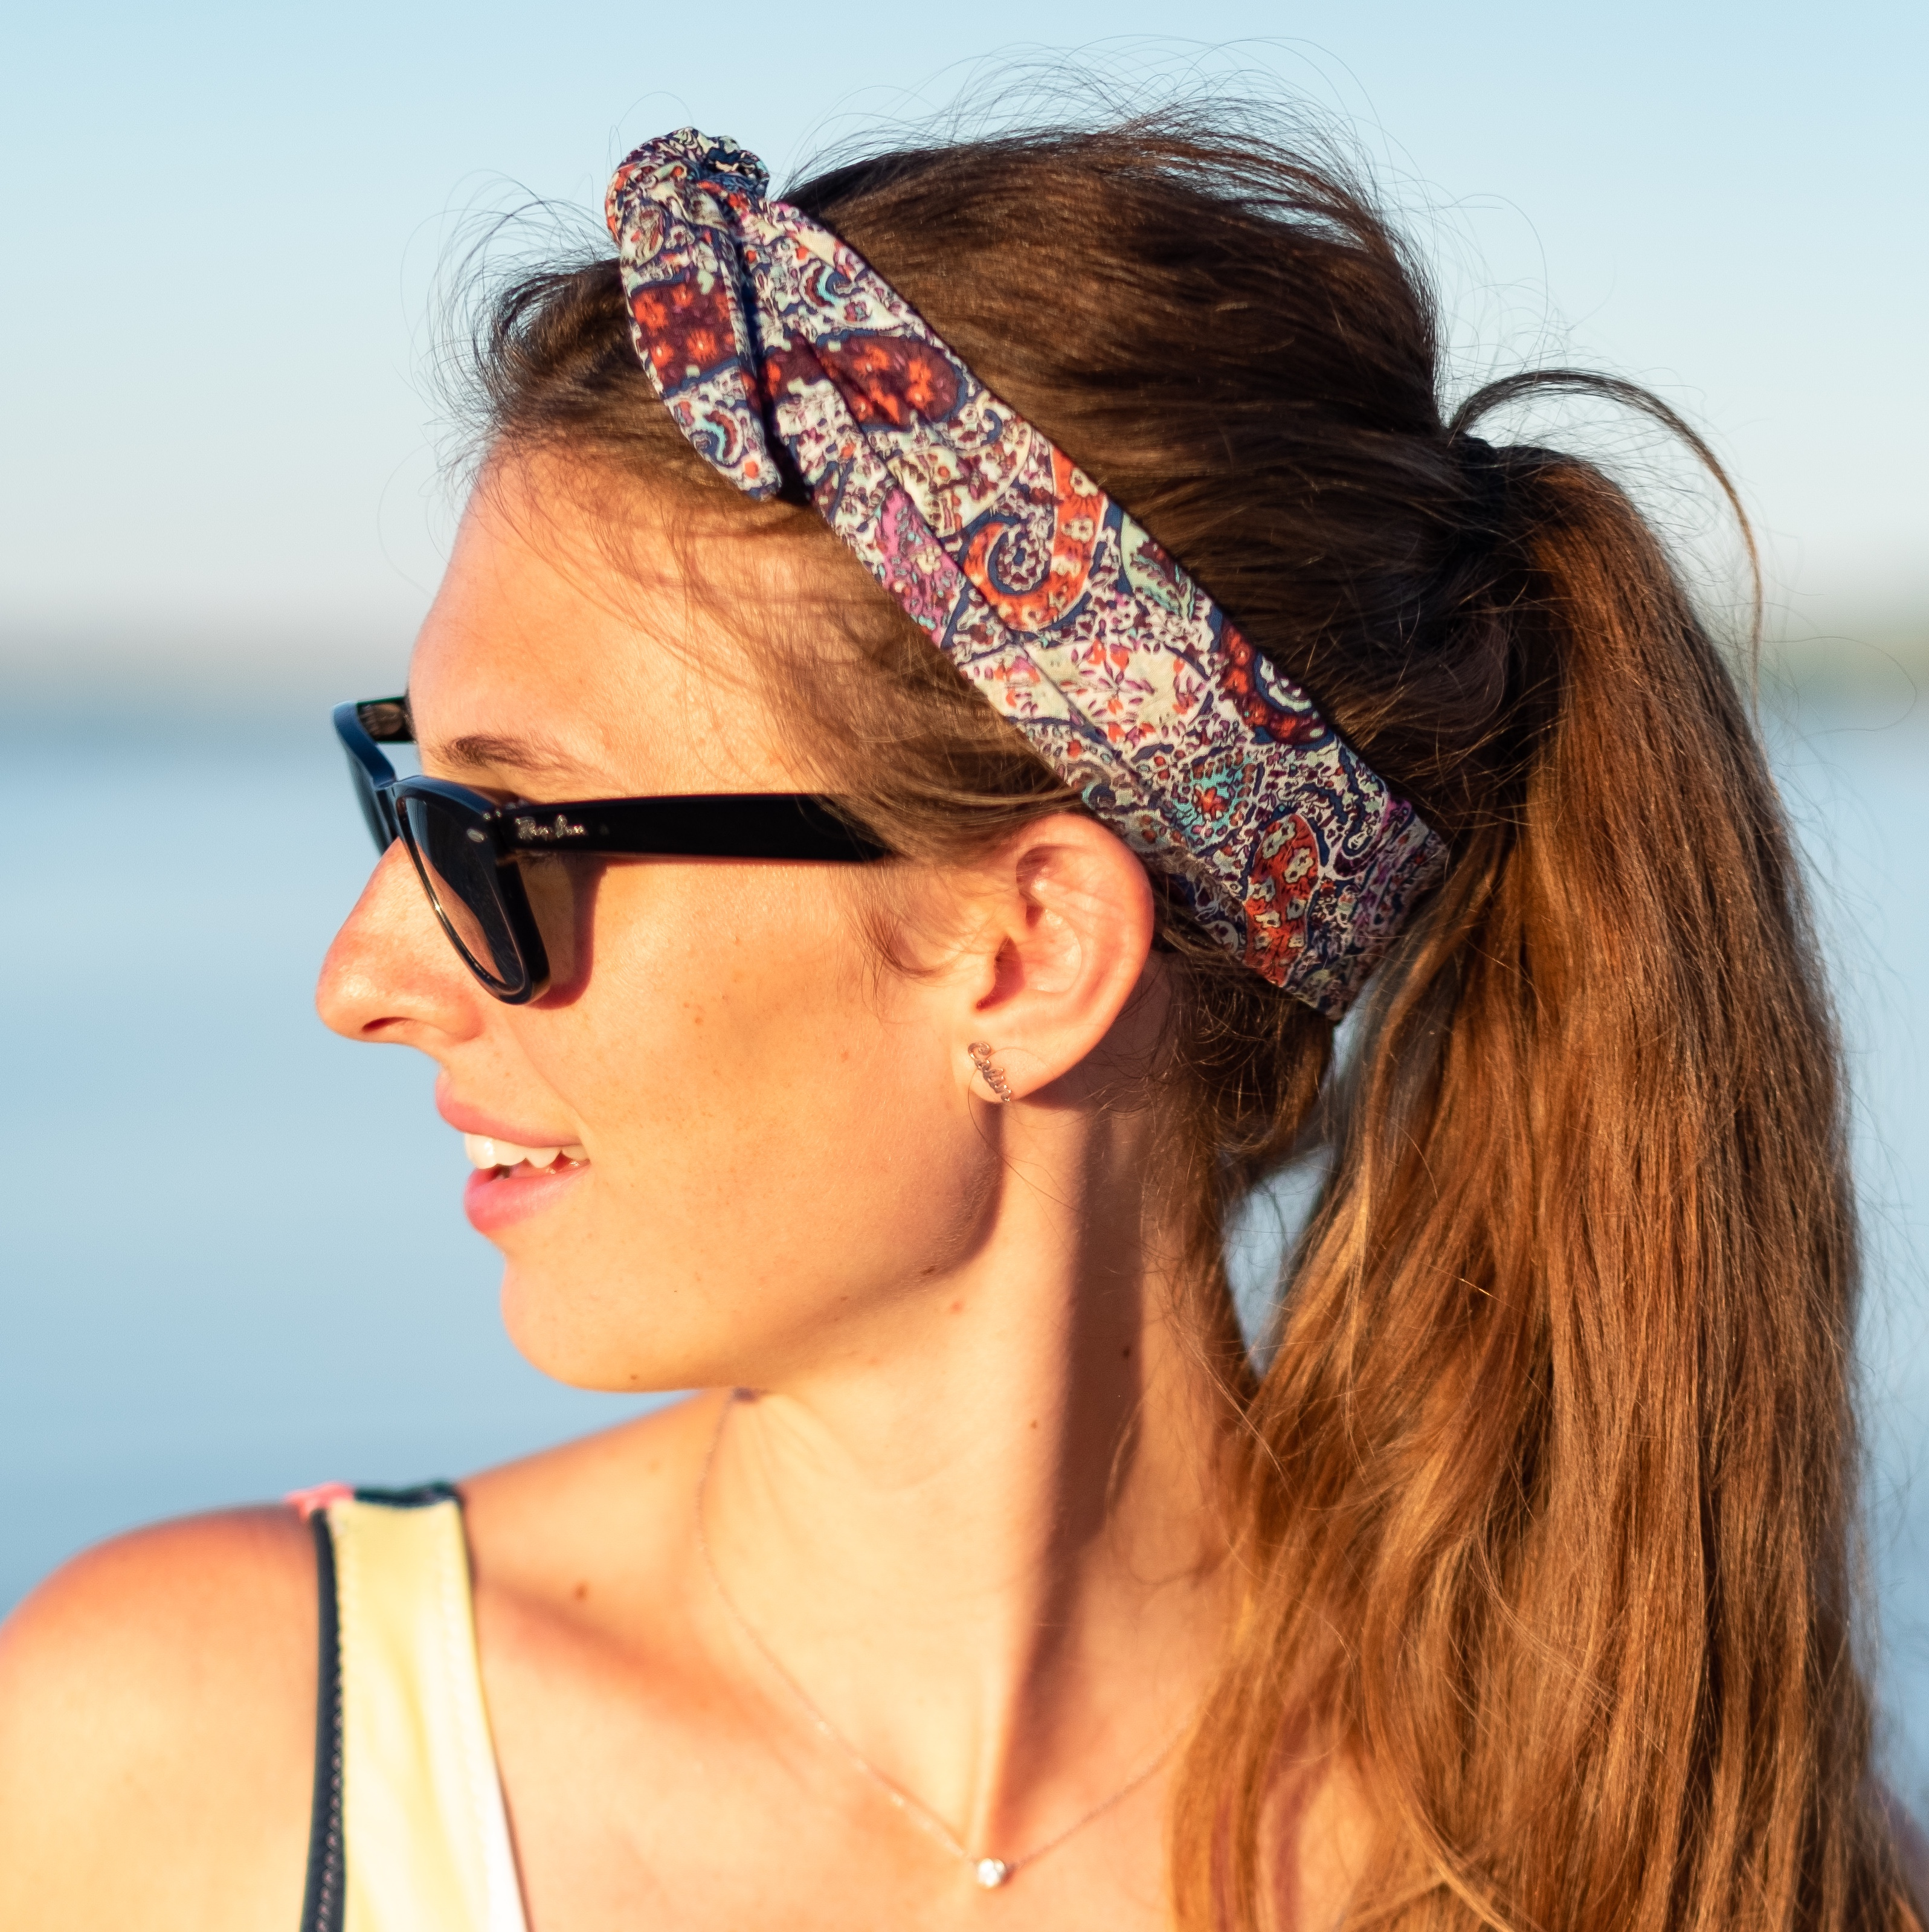 Beautiful woman with long blonde ponytail, wearing wire-framed colorful paisley bandana.